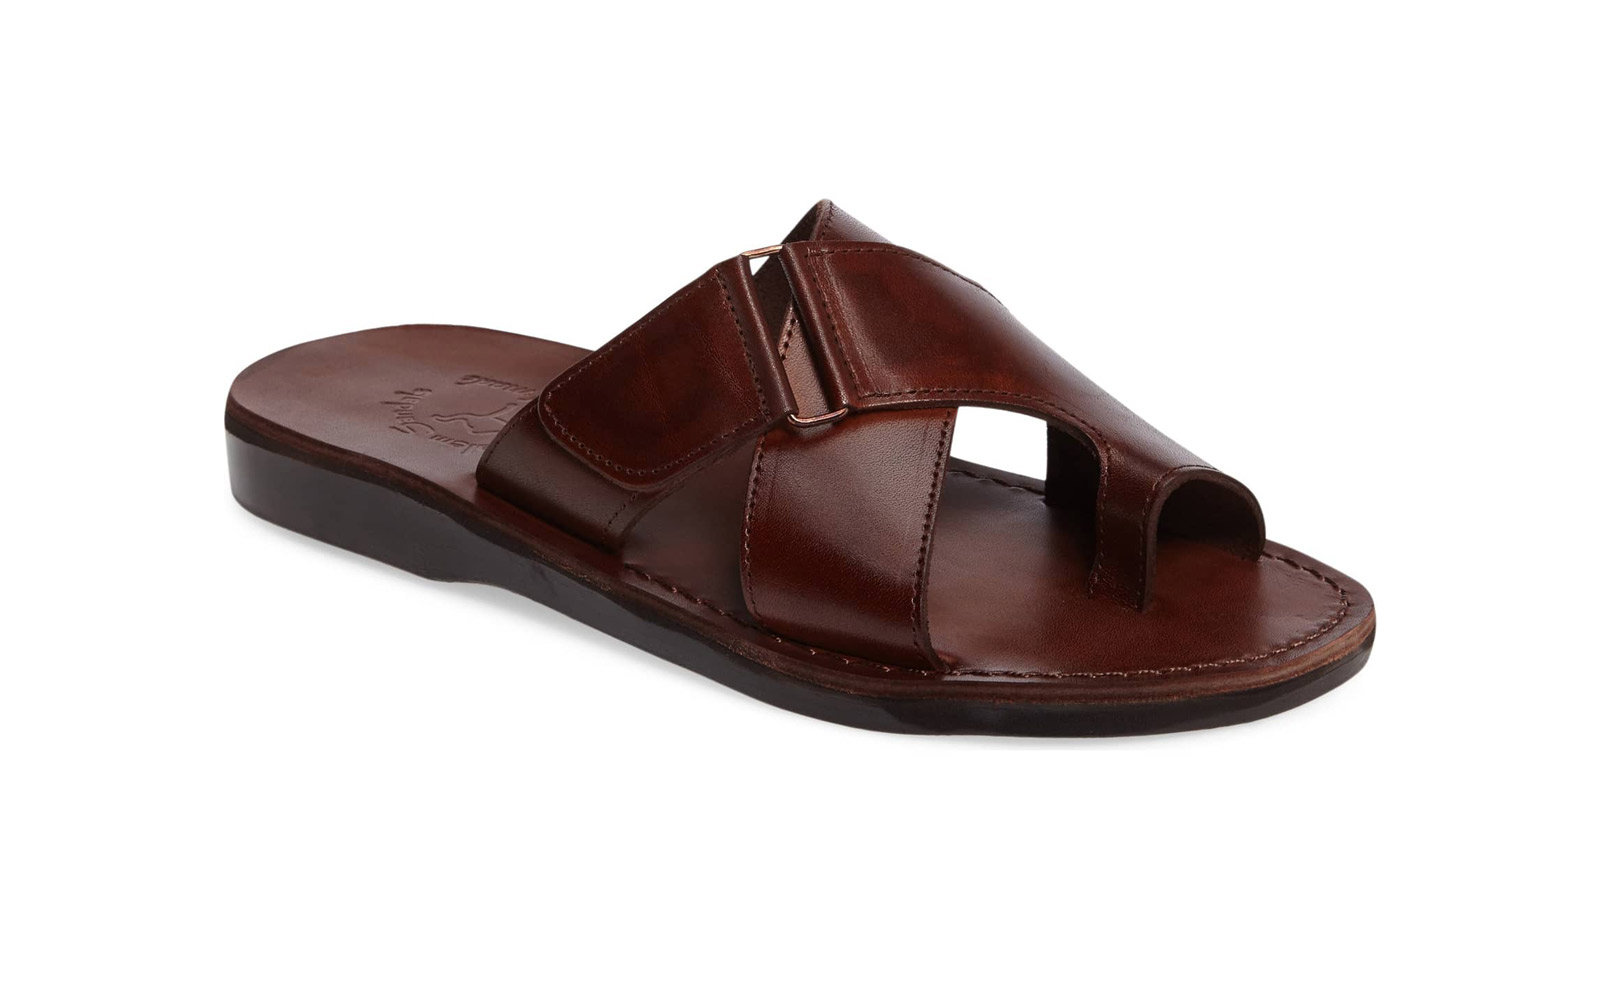 19d4019928373b The Best Men s Sandals to Pack for Your Next Vacation